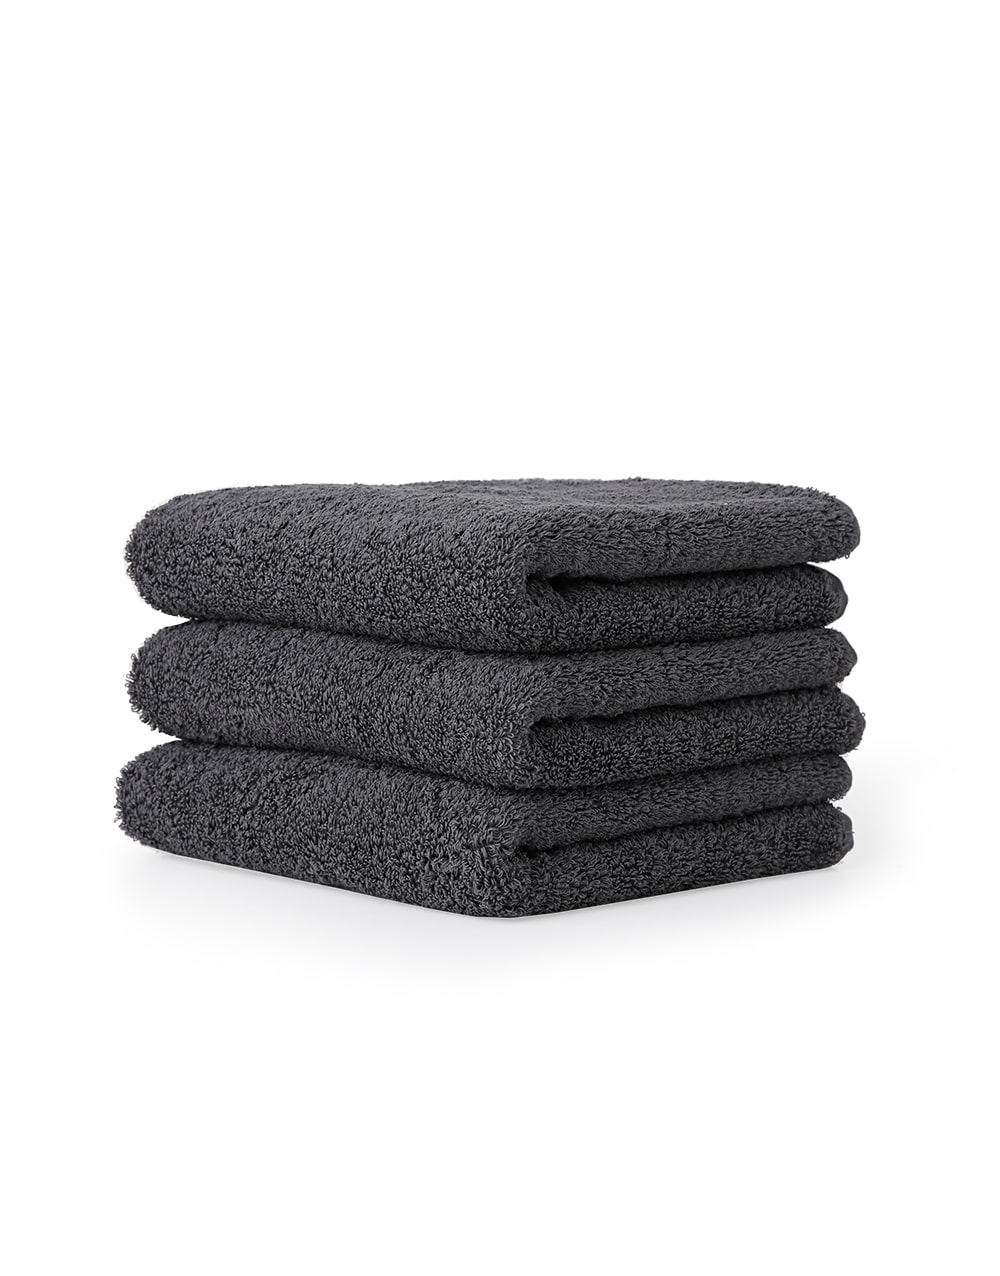 GBH X TWB 40H TOWEL SET GREY